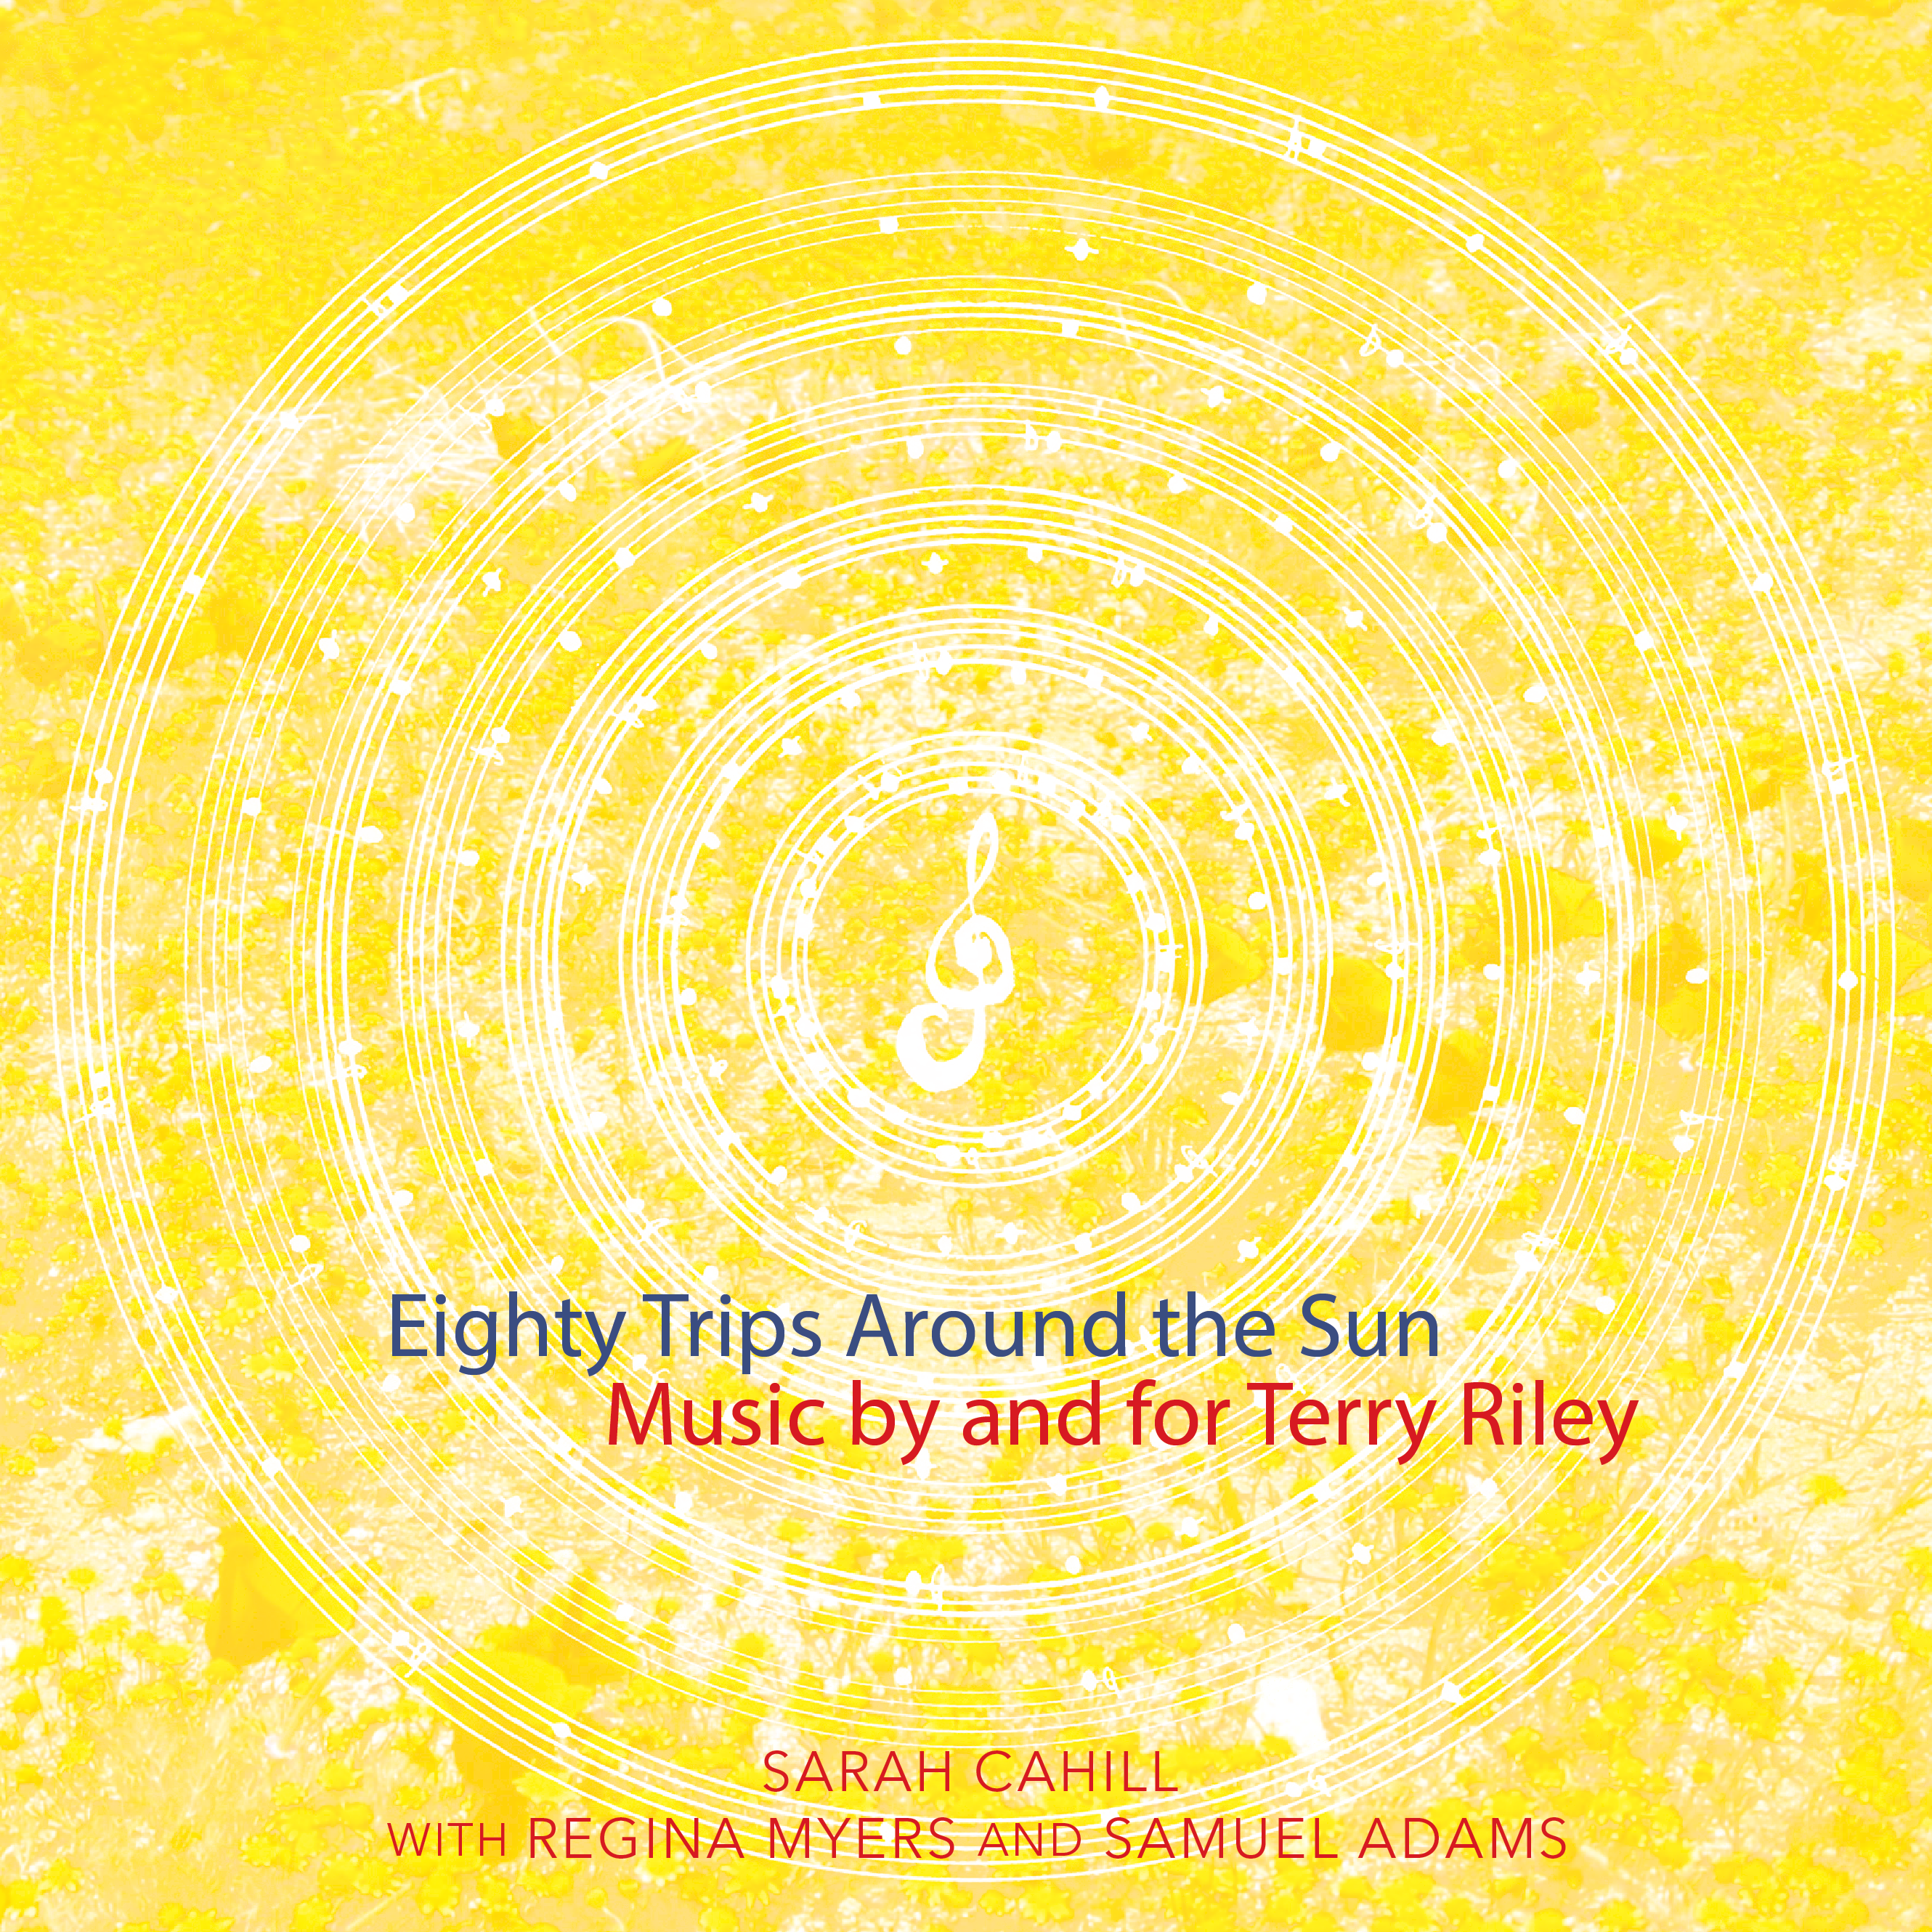 Sarah Cahill - Eighty Trips Around the Sun- Music by and for Terry Riley - cover.png